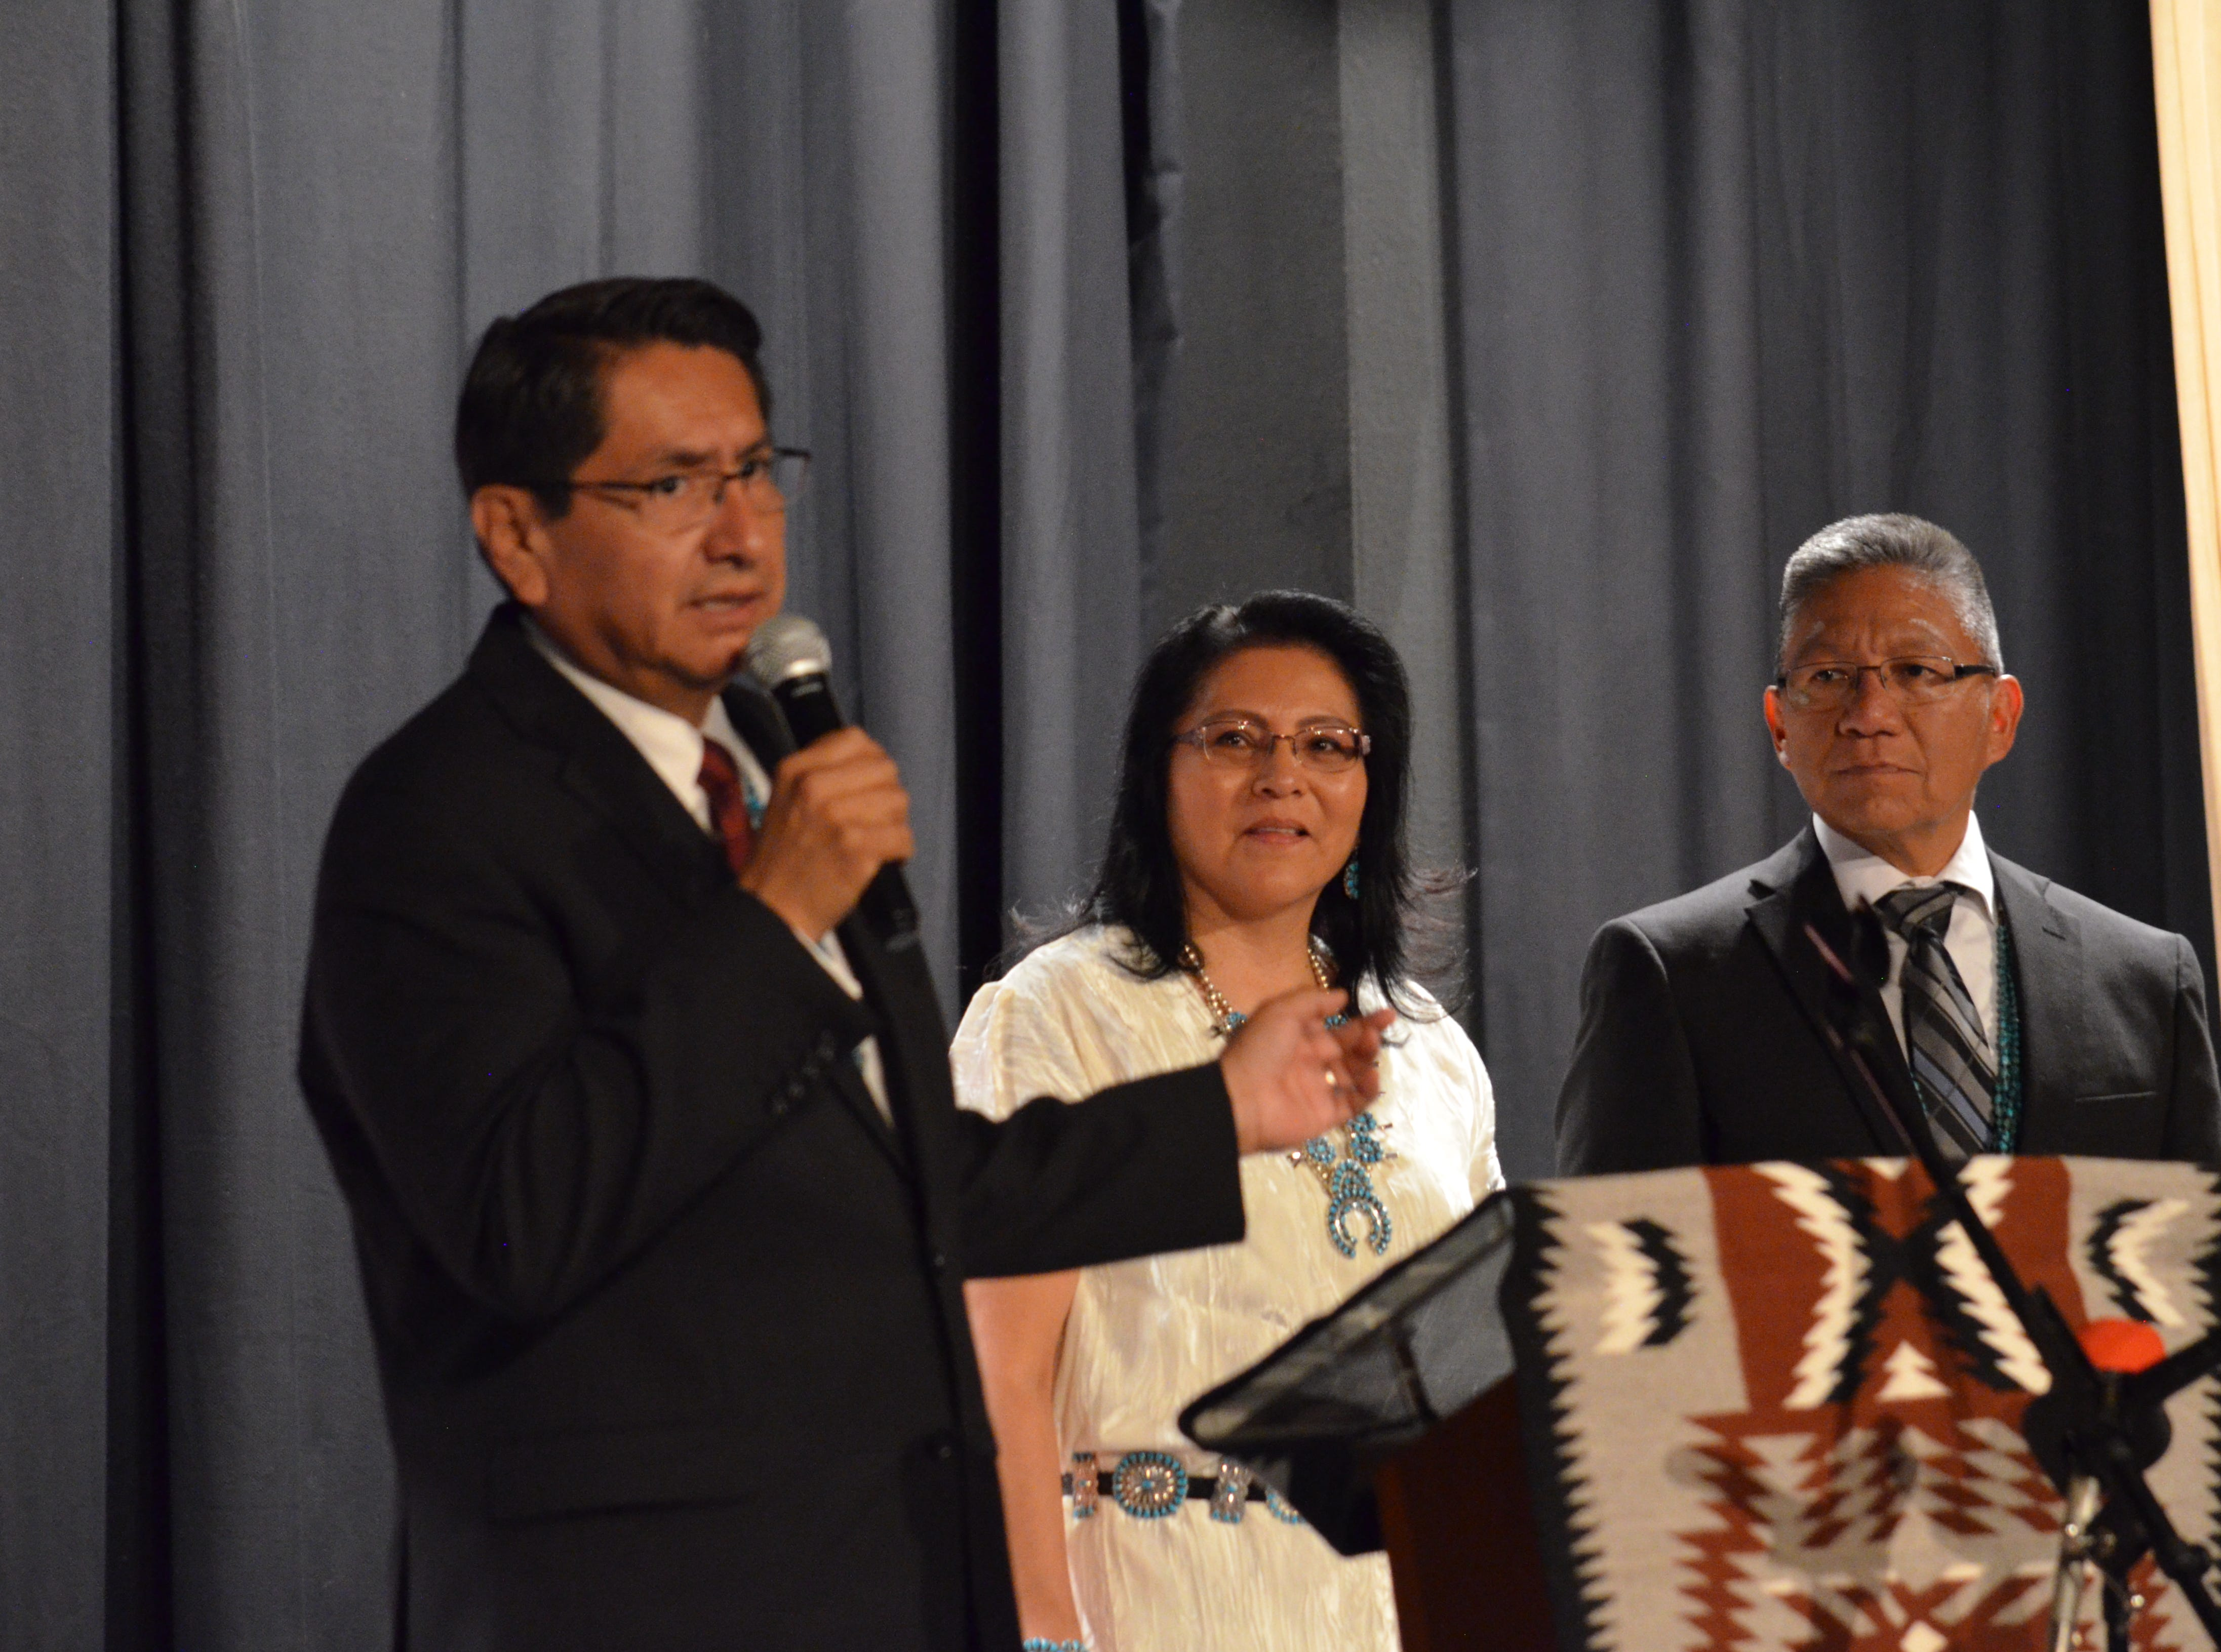 Navajo Nation presidential candidate Jonathan Nez, left, talks about running mate Myron Lizer, third from left. Lizer was joined by his wife, Dottie Lizer, second from left, at the announcement on Tuesday in Window Rock, Arizona.